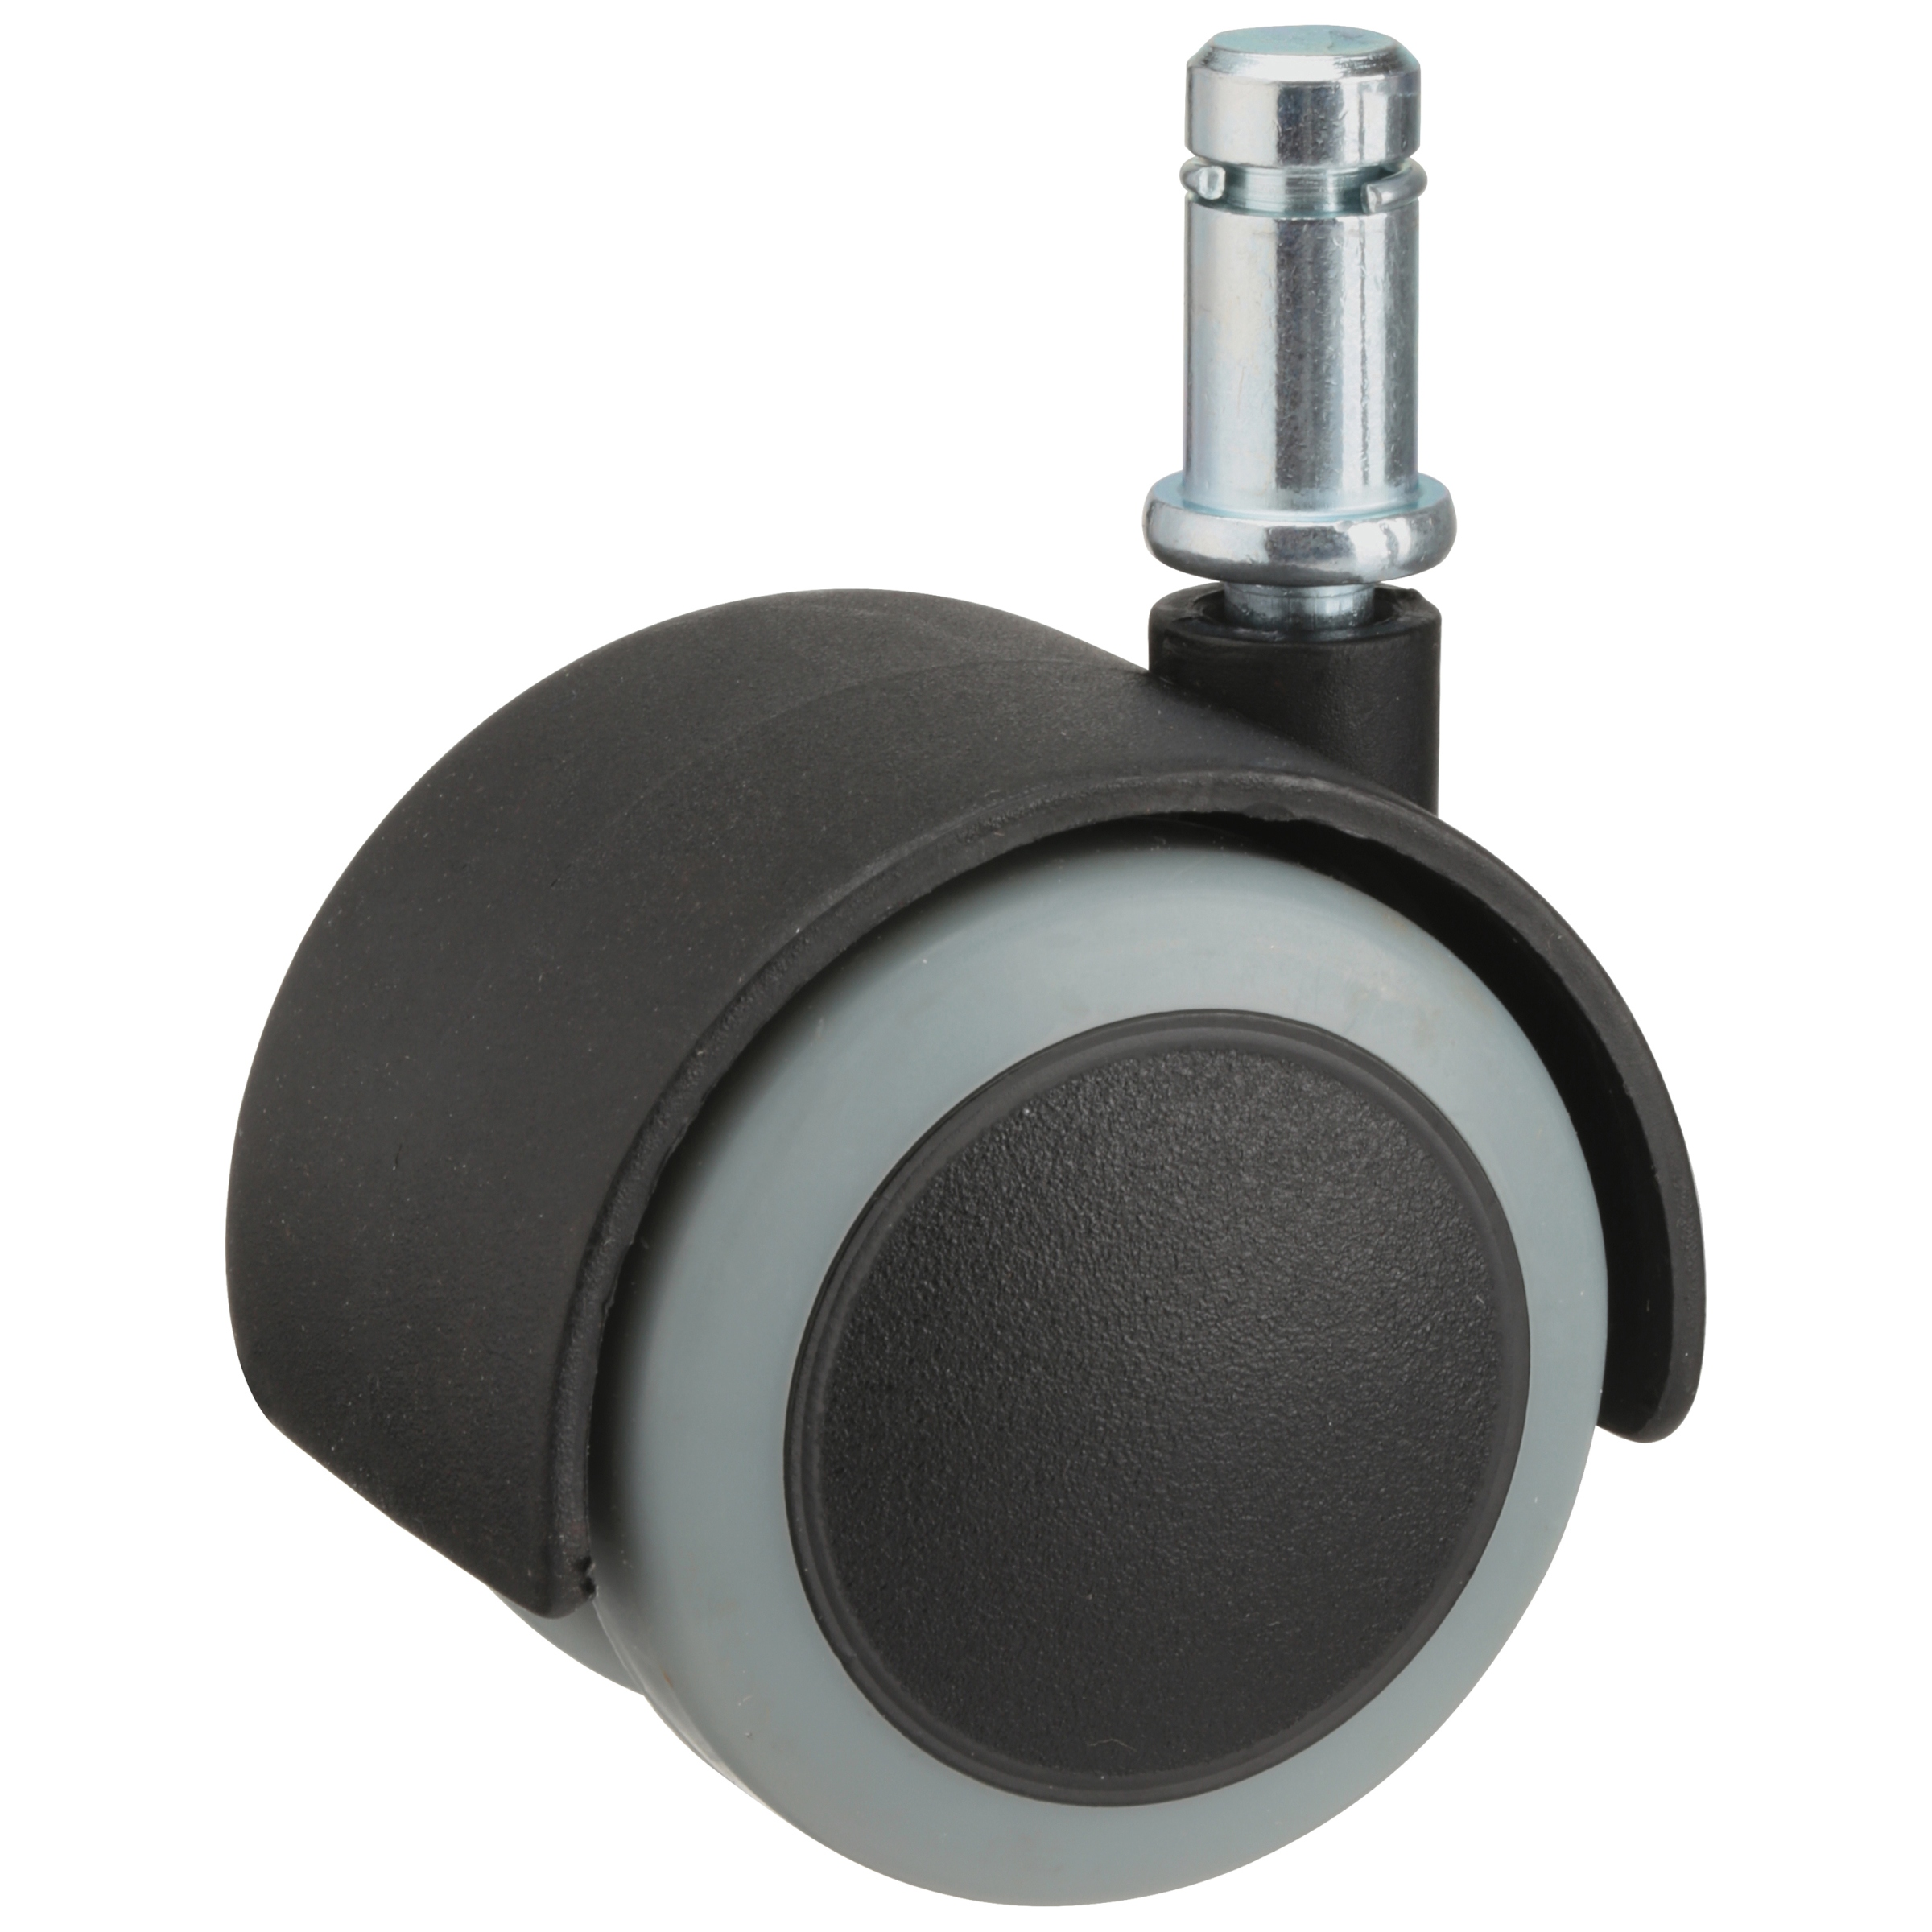 "Slipstick 2"" Floor Protecting Rubber Caster Wheels, 7/16"" Stem, Black/Grey, Set of 5"